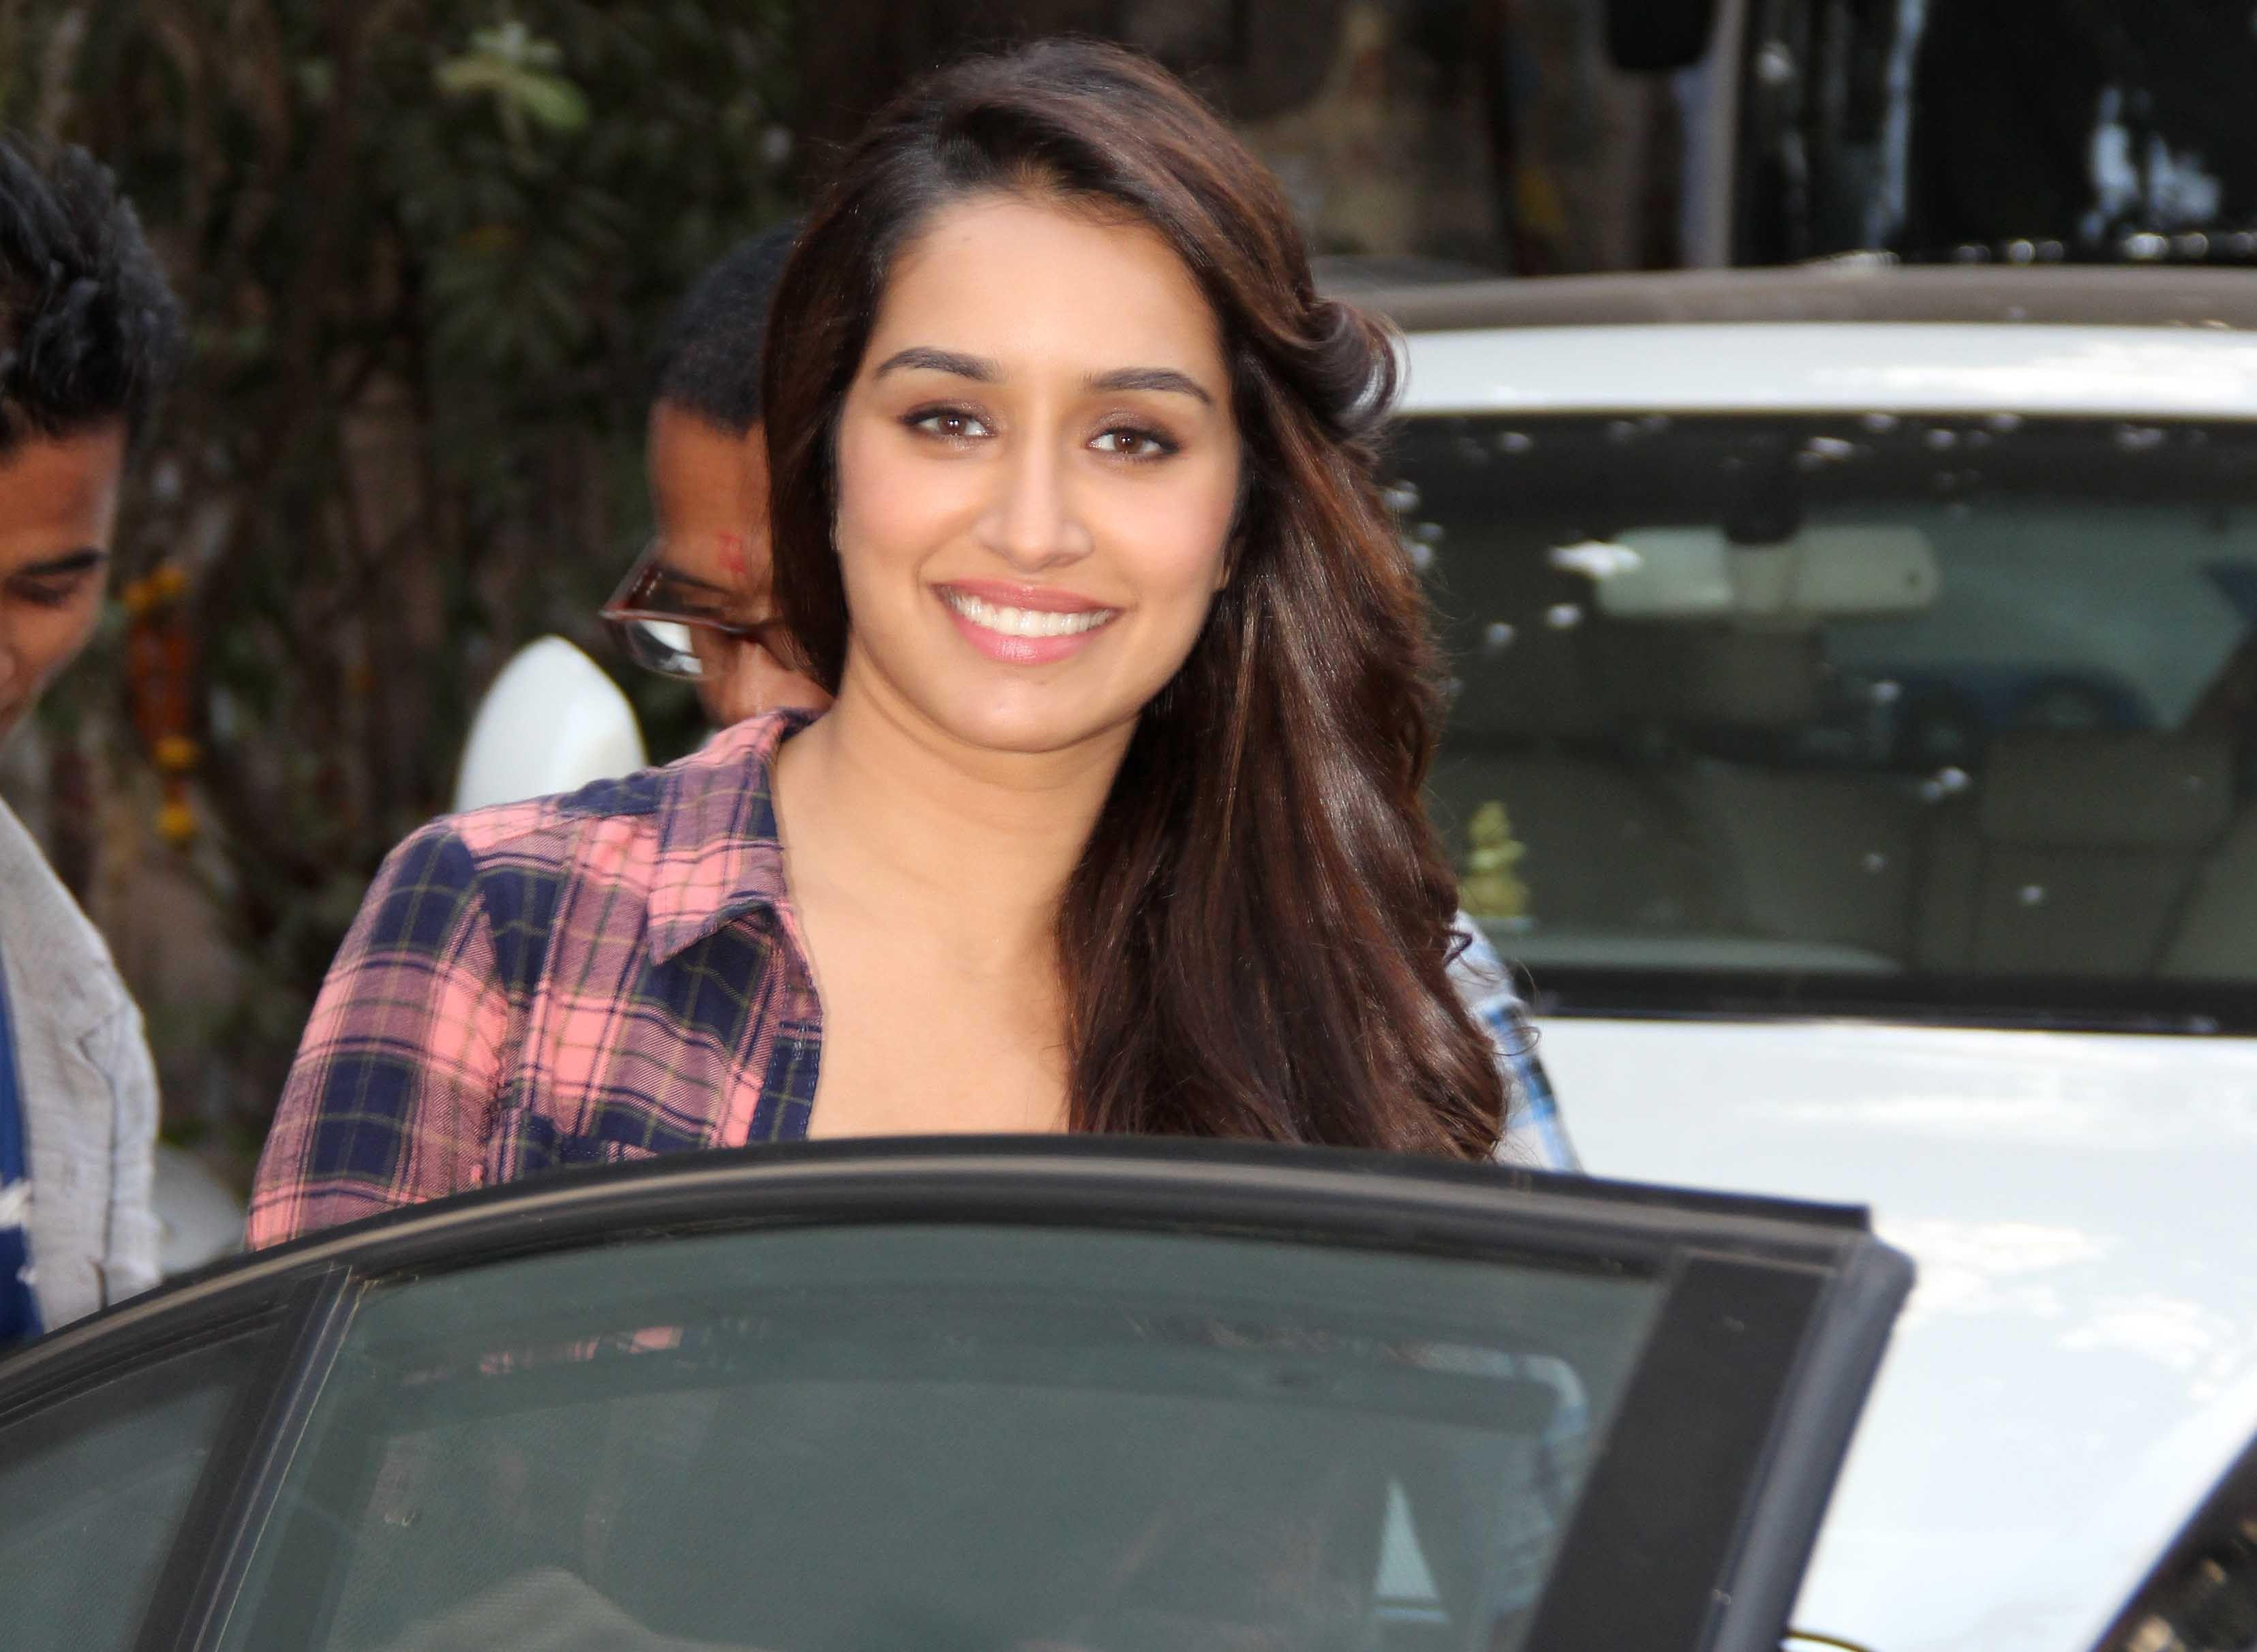 shraddha kapoor smile hd wallpapers - wallpaper cave